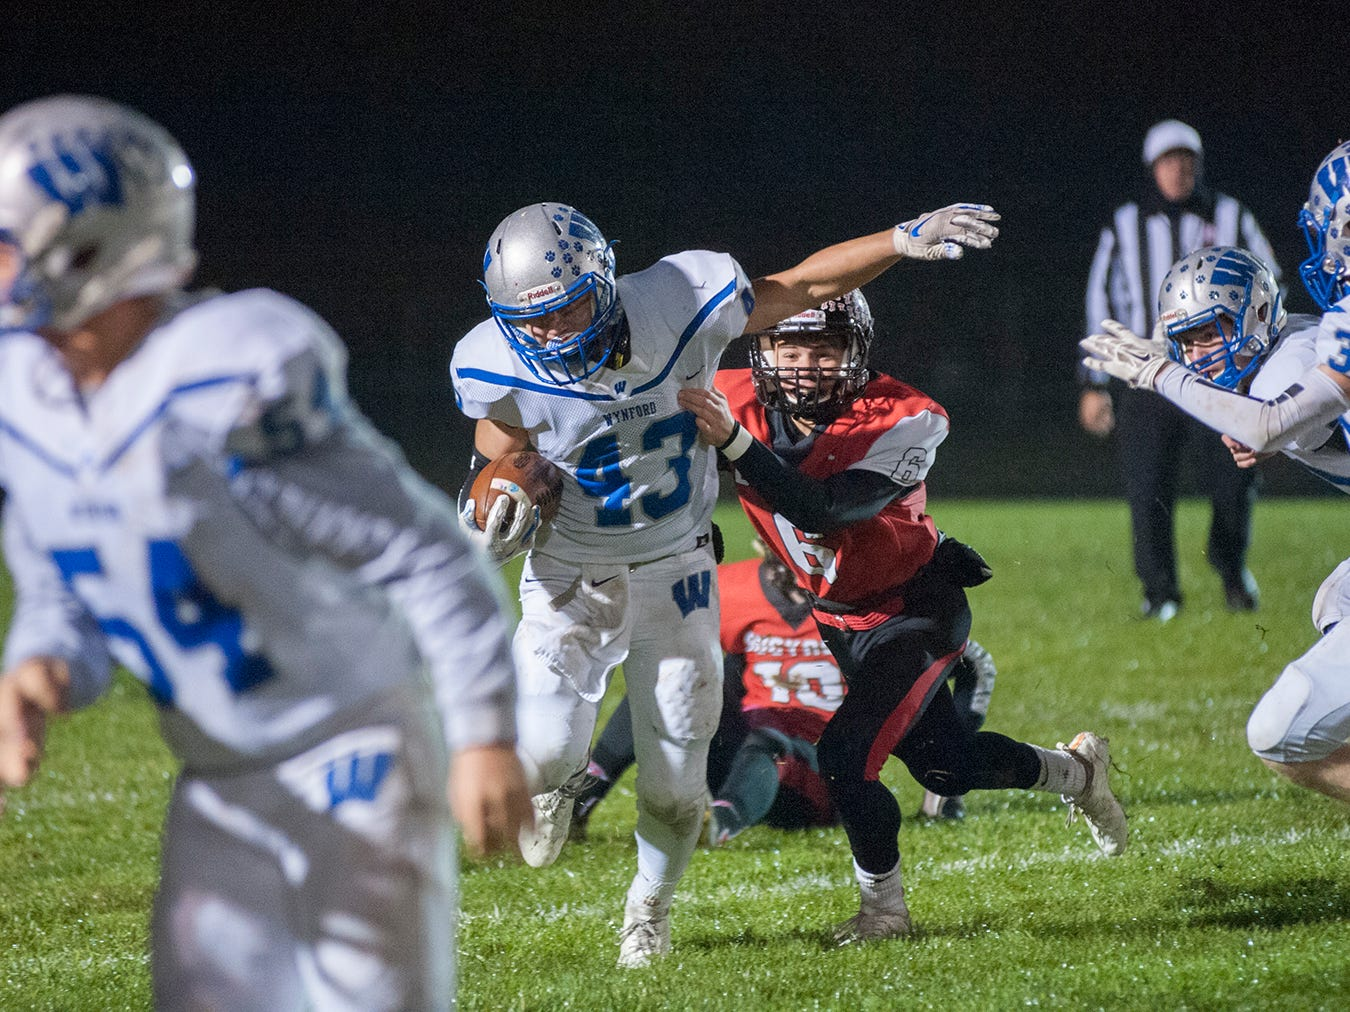 Wynford's Kendall Blair shakes a tackle from Bucyrus' Lincoln Mollenkopf.